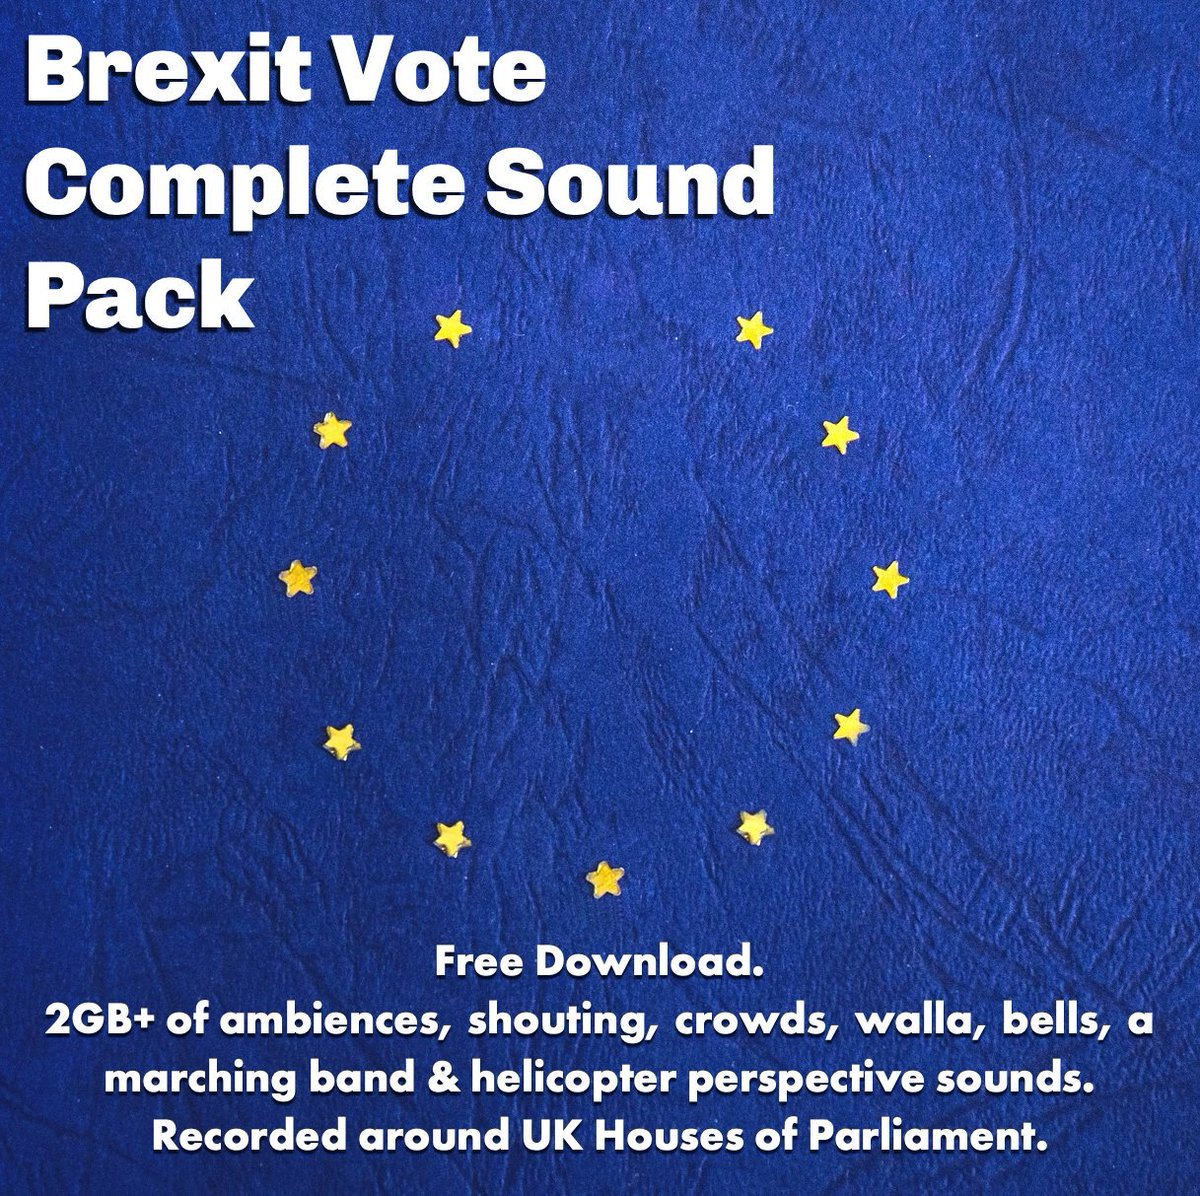 Missed my #Brexitvote Sound Packs earlier this year? Get a free download of the complete collection with over 2GB of ambiences around UK parliament with shouting, crowds, walla, bells & plenty helicopter perspective. #sounddesign #audiopost #soundrecording  http:// bit.ly/brexitvotecomp letesoundpack   … <br>http://pic.twitter.com/2oeNo7Nl4e